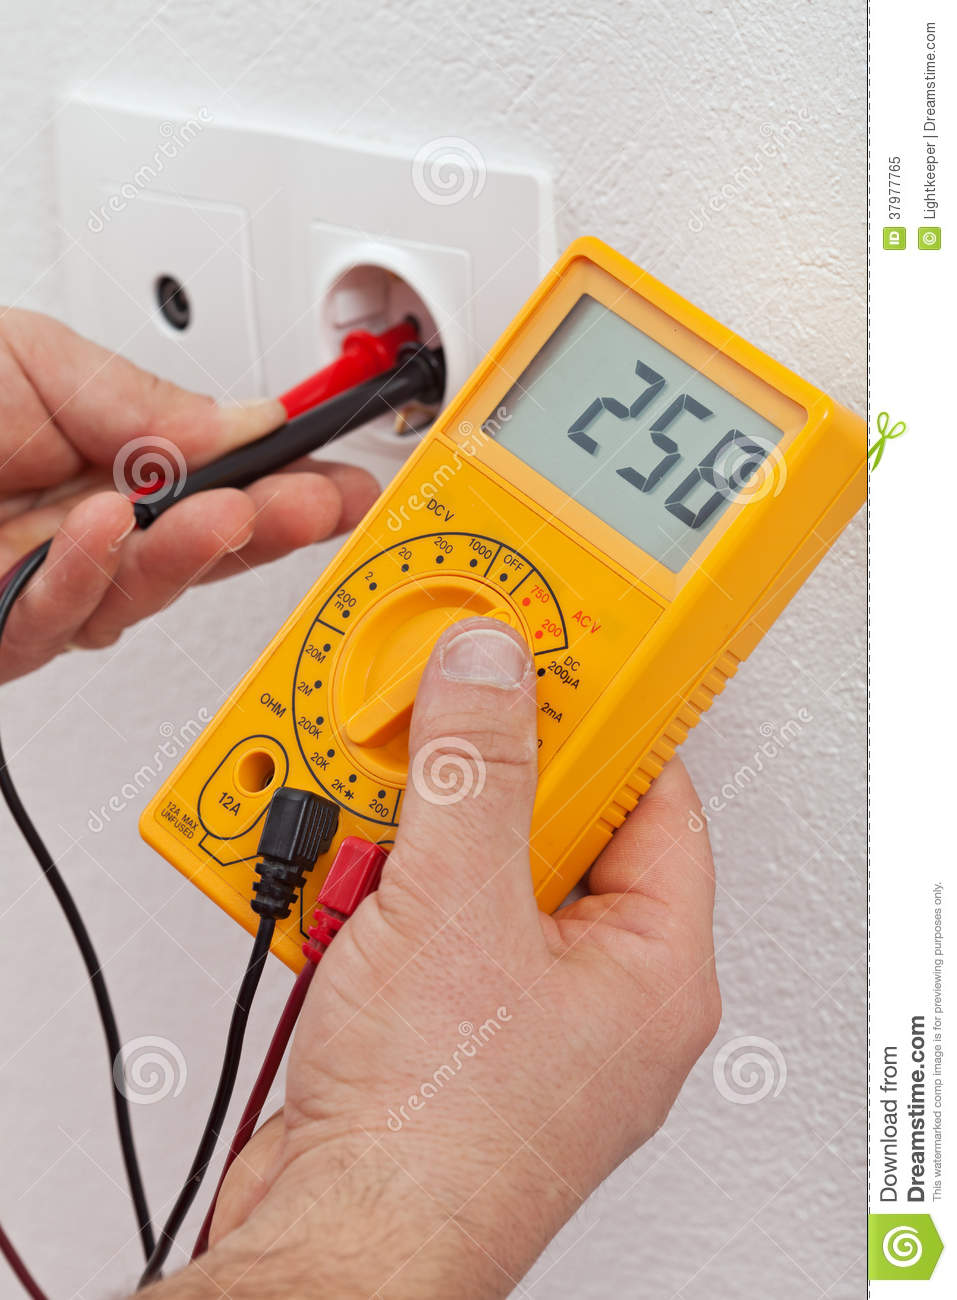 electrician hands measuring voltage in electrical outlet royalty free stock photo image 37977765. Black Bedroom Furniture Sets. Home Design Ideas